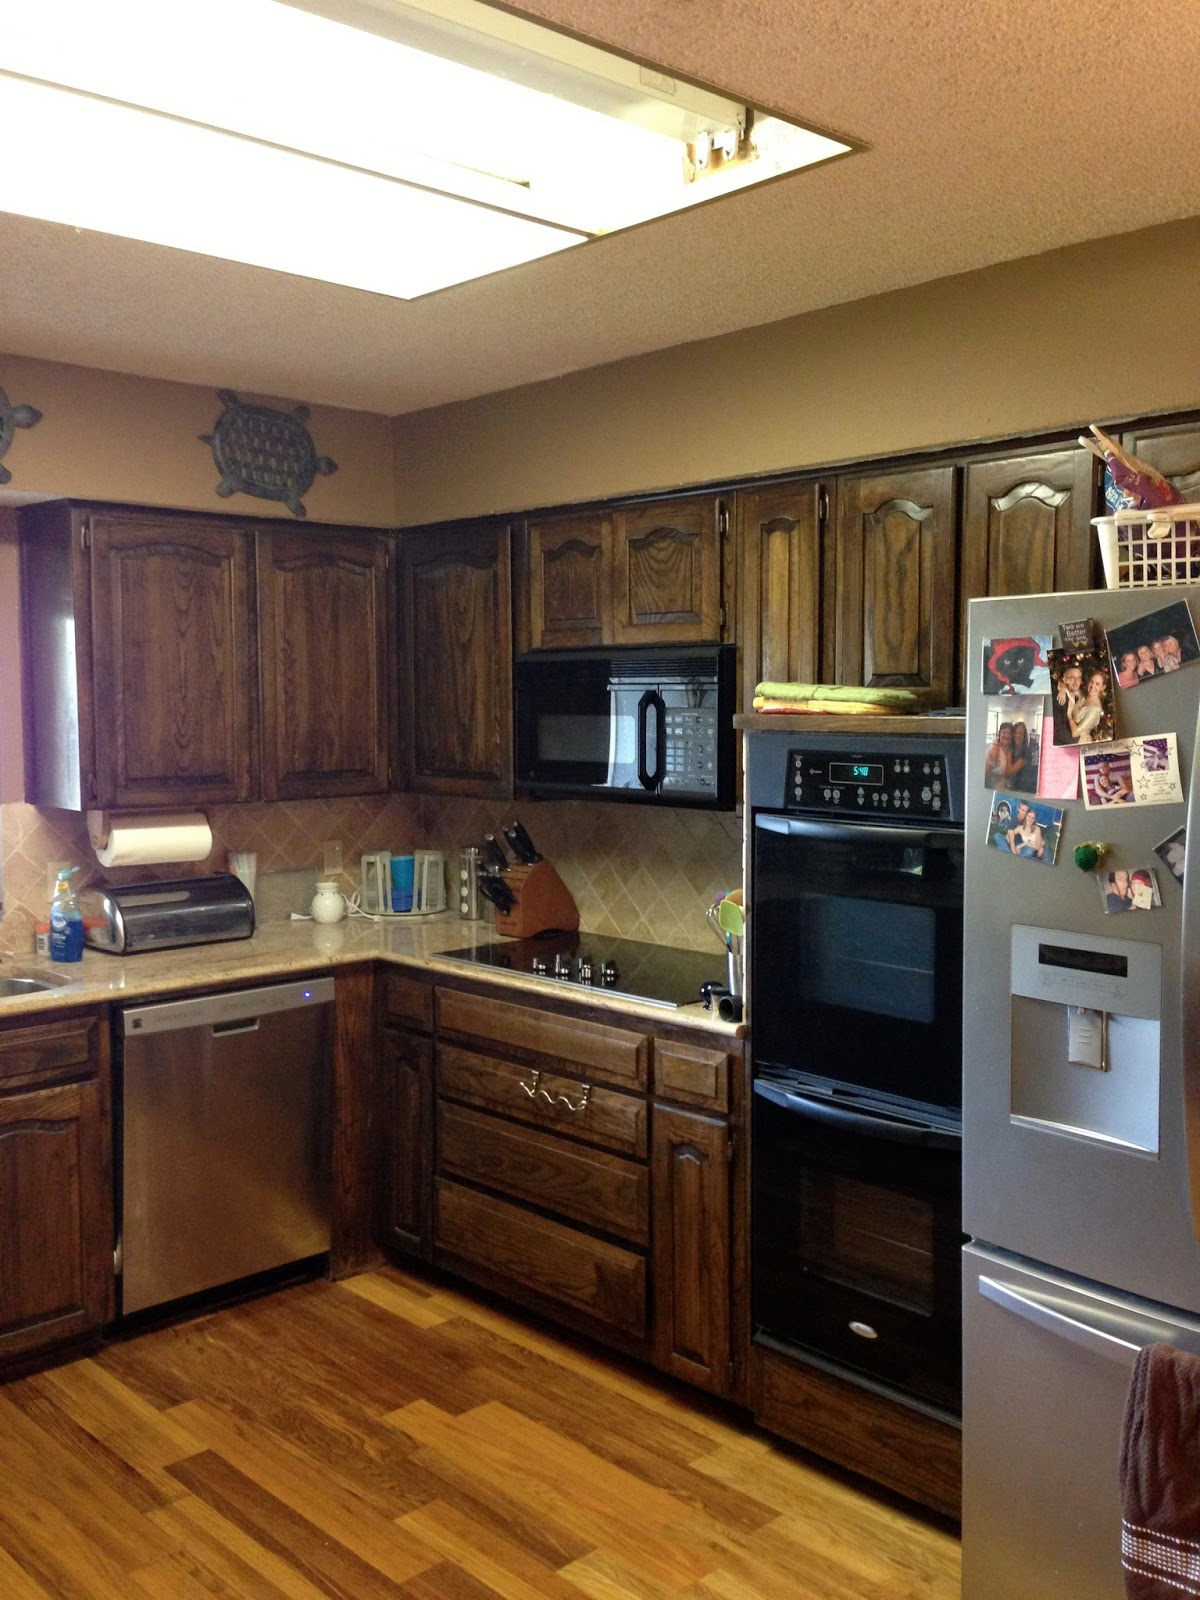 Can Kitchen Cabinets Be Refinished Wilker Do 39s Using Chalk Paint To Refinish Kitchen Cabinets